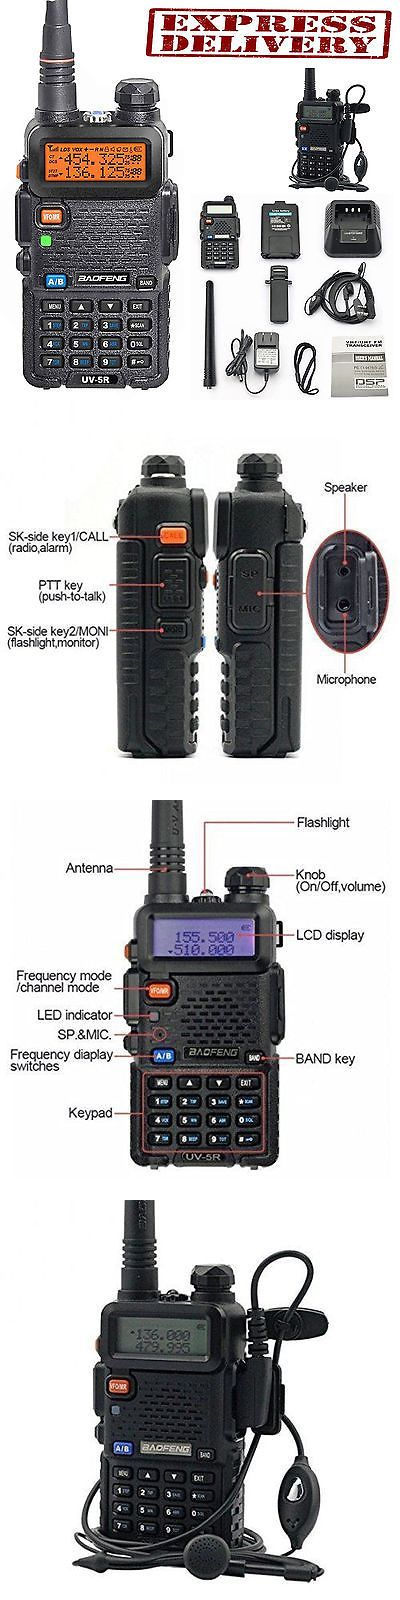 Scanners: Police Radio Scanner Handheld Fire Transceiver Digital Two Way Portable Antenna -> BUY IT NOW ONLY: $31.09 on eBay!